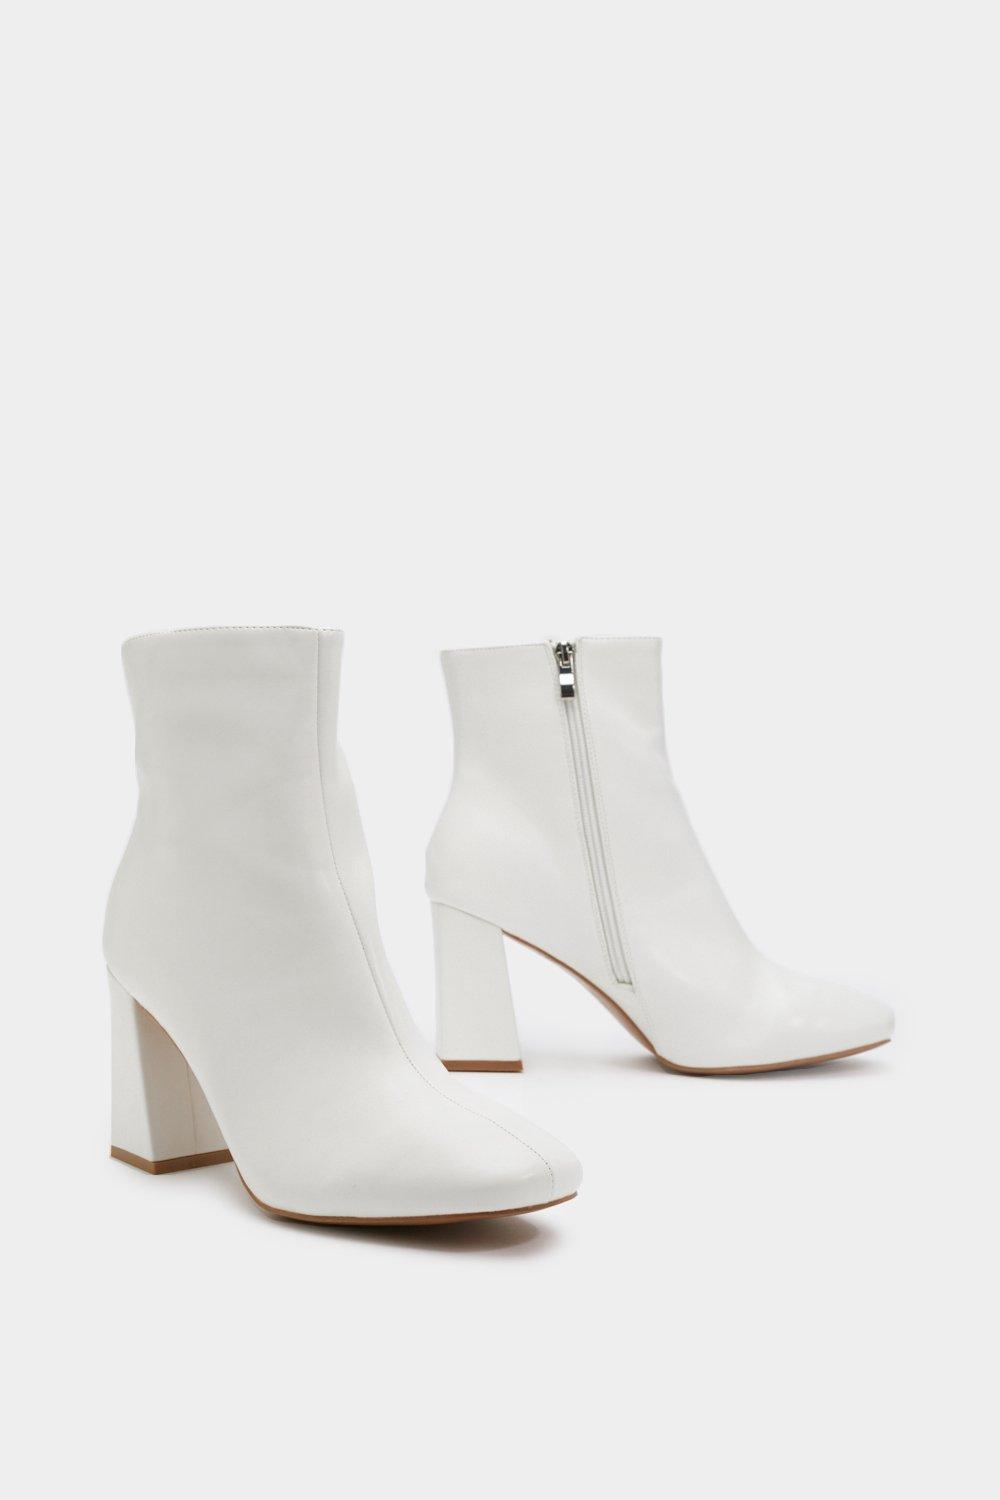 33365dfba7ee Womens White Hit Your Stride Faux Leather Ankle Boots. Hover to zoom